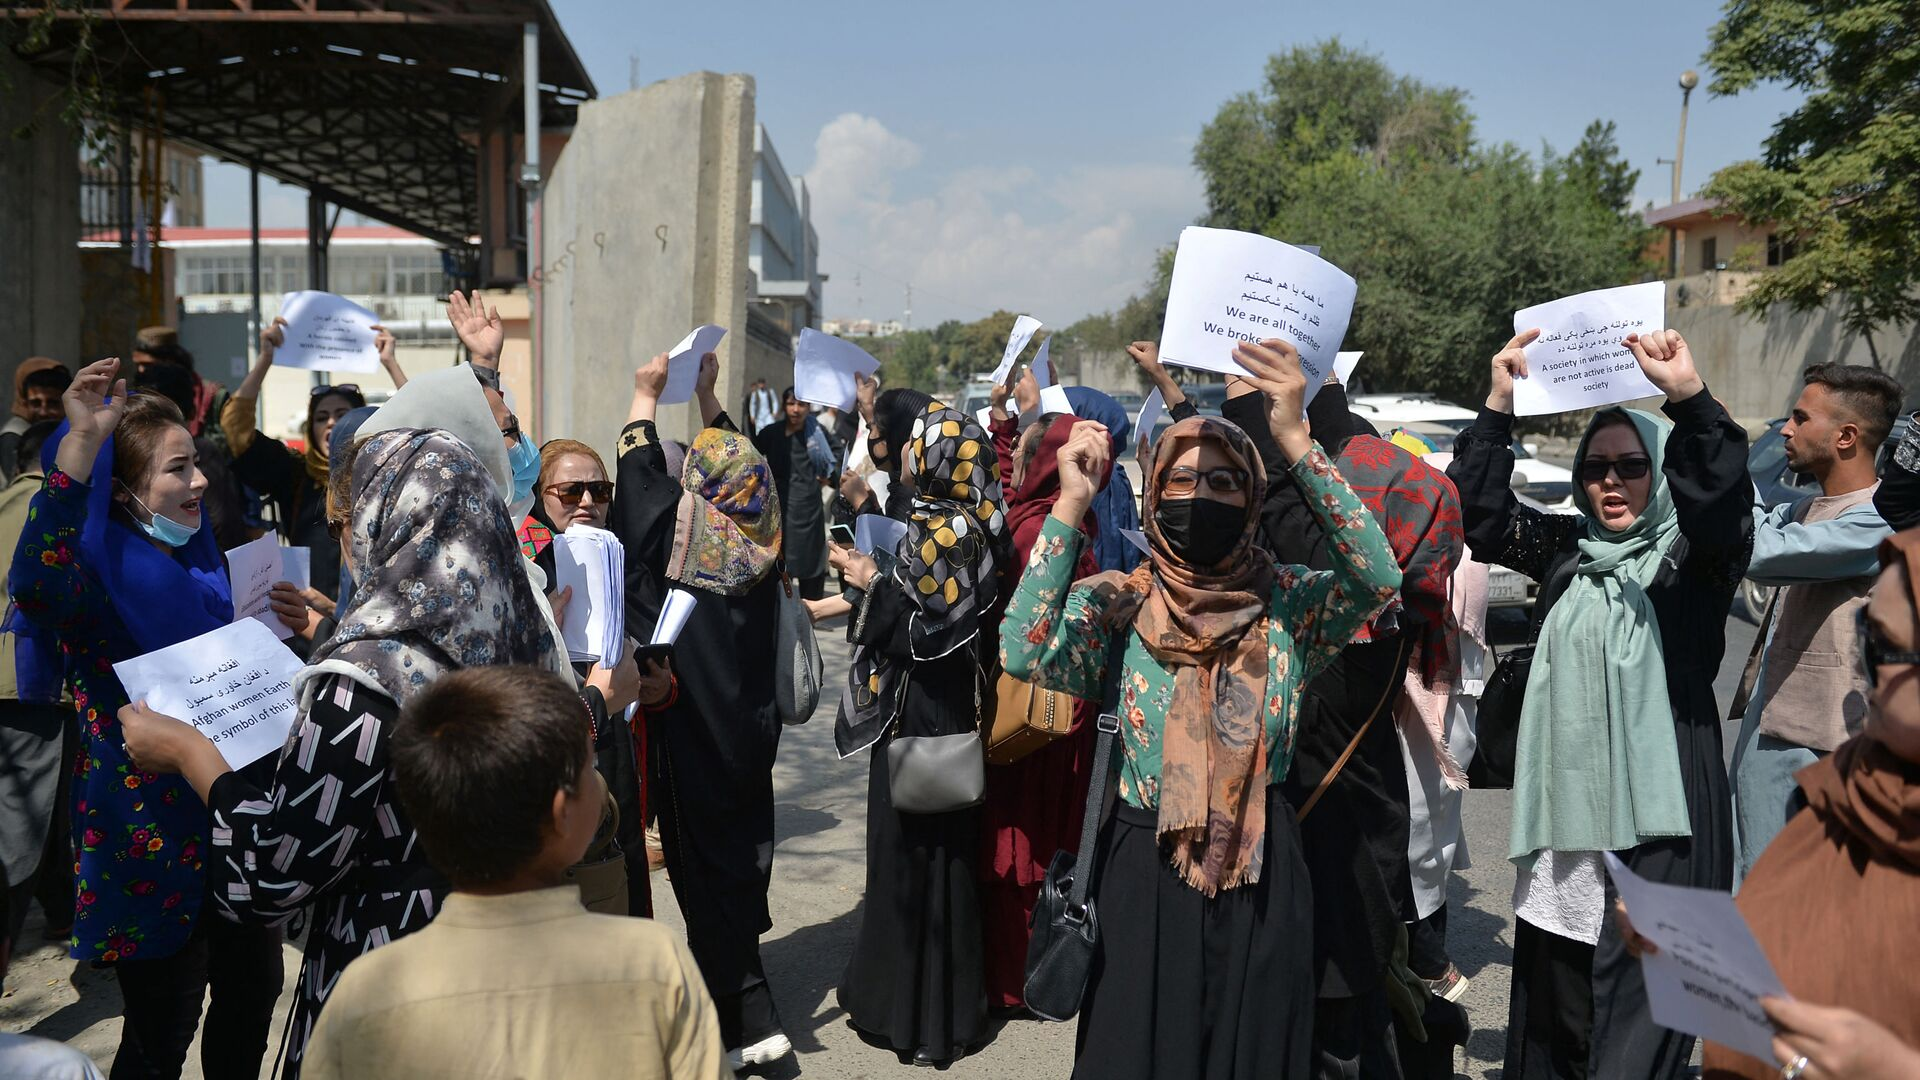 Afghan women take part in a protest march for their rights under the Taliban rule in the downtown area of Kabul on September 3, 2021.  - Sputnik International, 1920, 04.09.2021